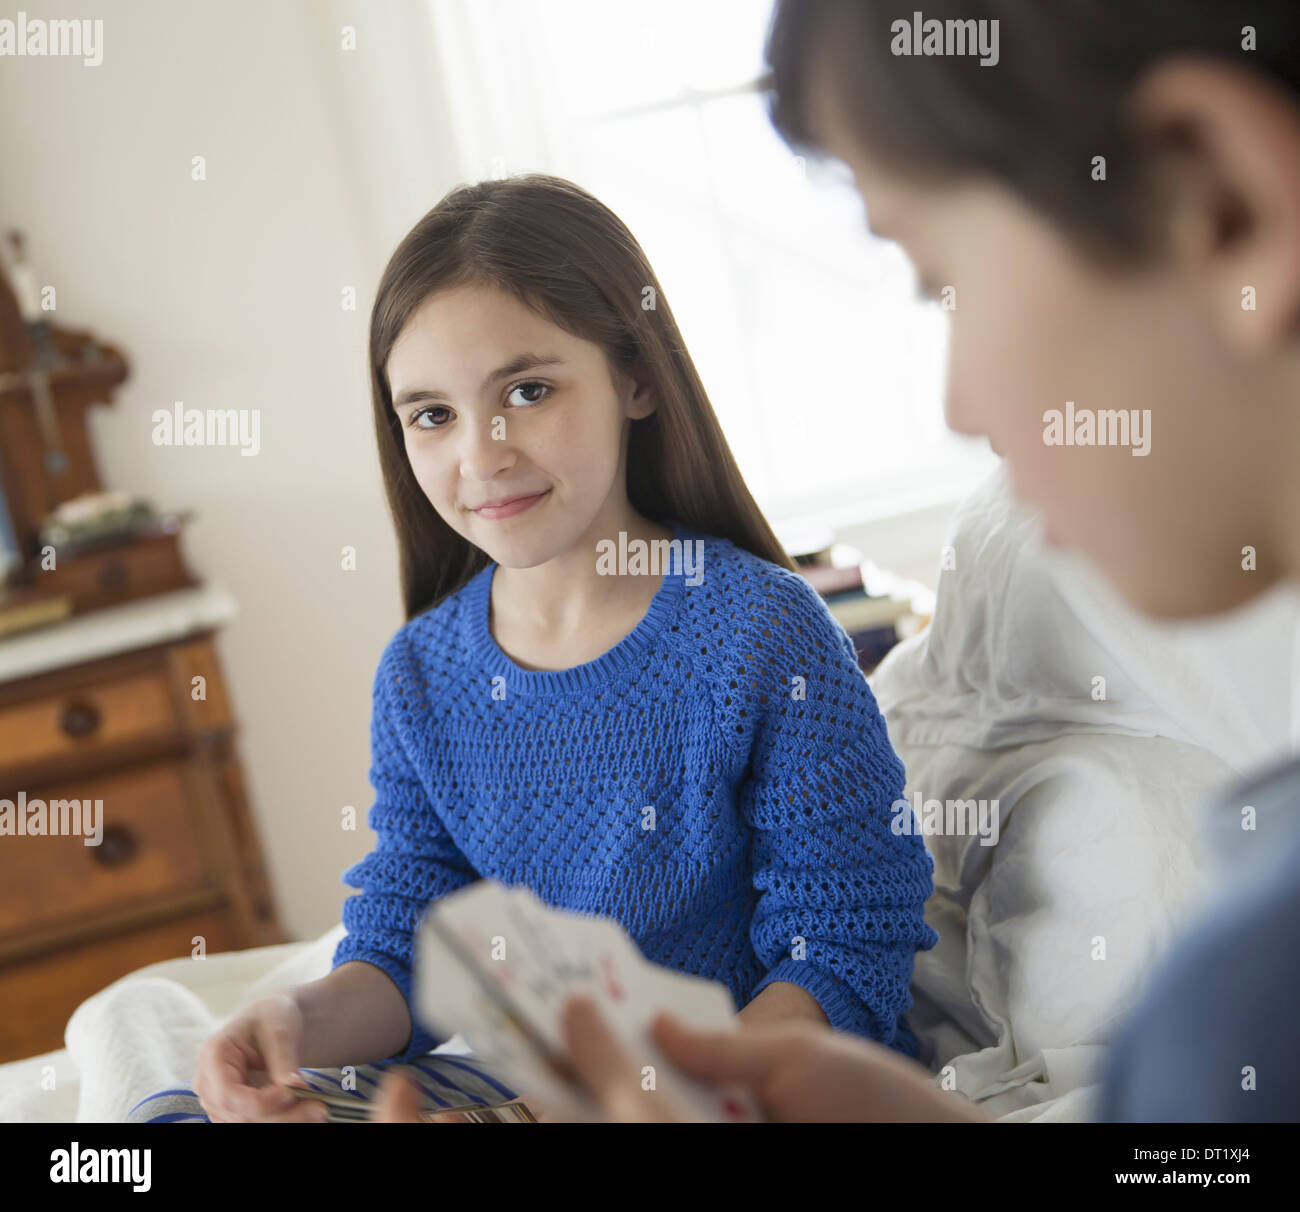 Two children at home sitting side by side and playing a game of cards - Stock Image